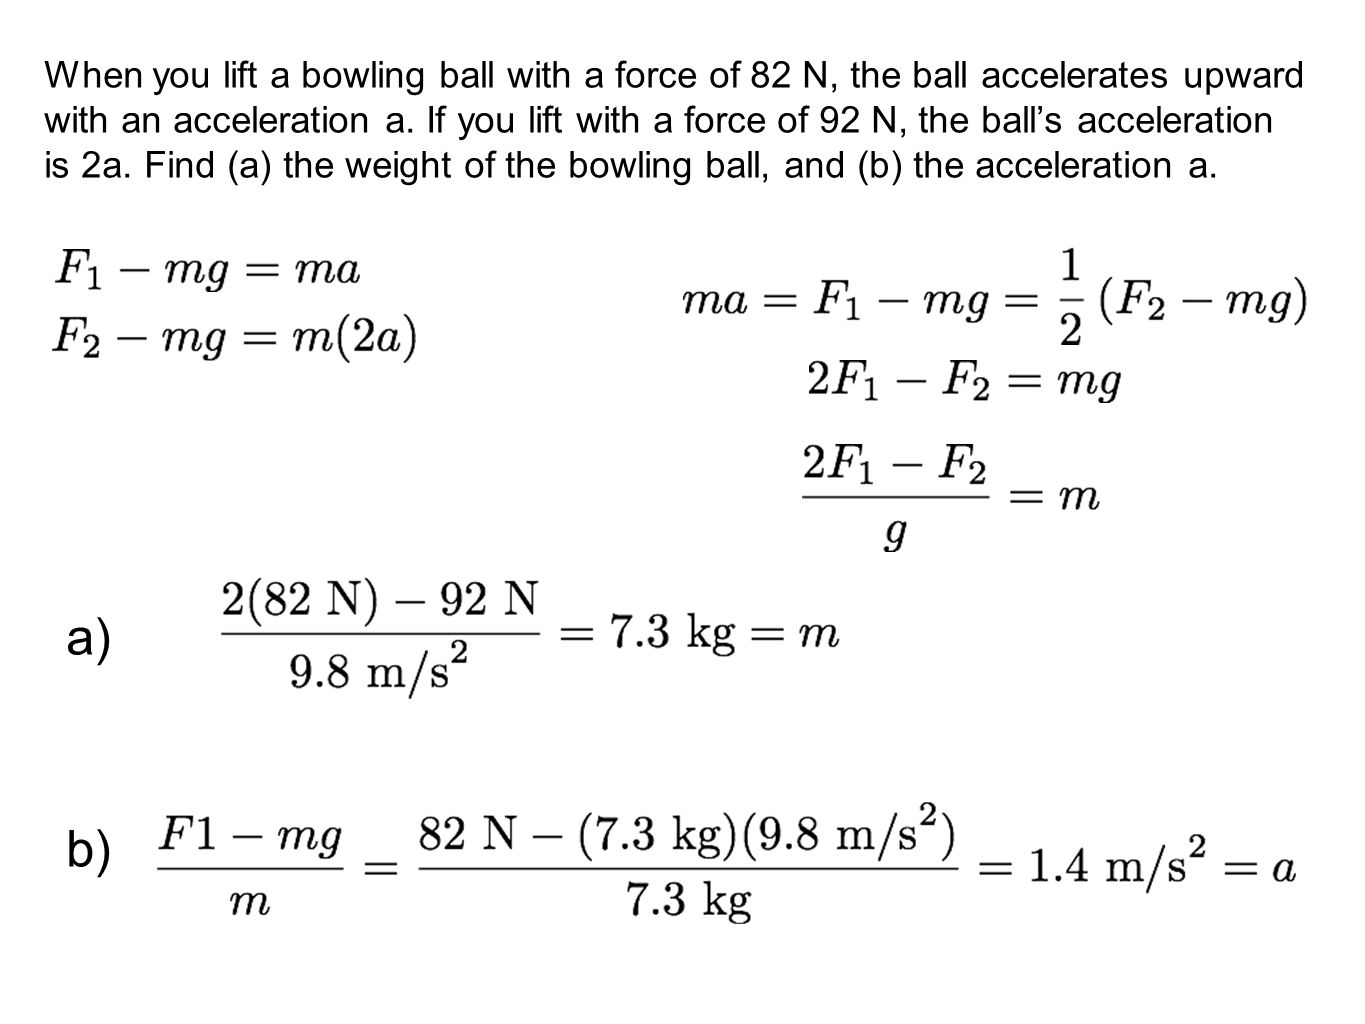 When you lift a bowling ball with a force of 82 N, the ball accelerates upward with an acceleration a. If you lift with a force of 92 N, the ball's acceleration is 2a. Find (a) the weight of the bowling ball, and (b) the acceleration a.